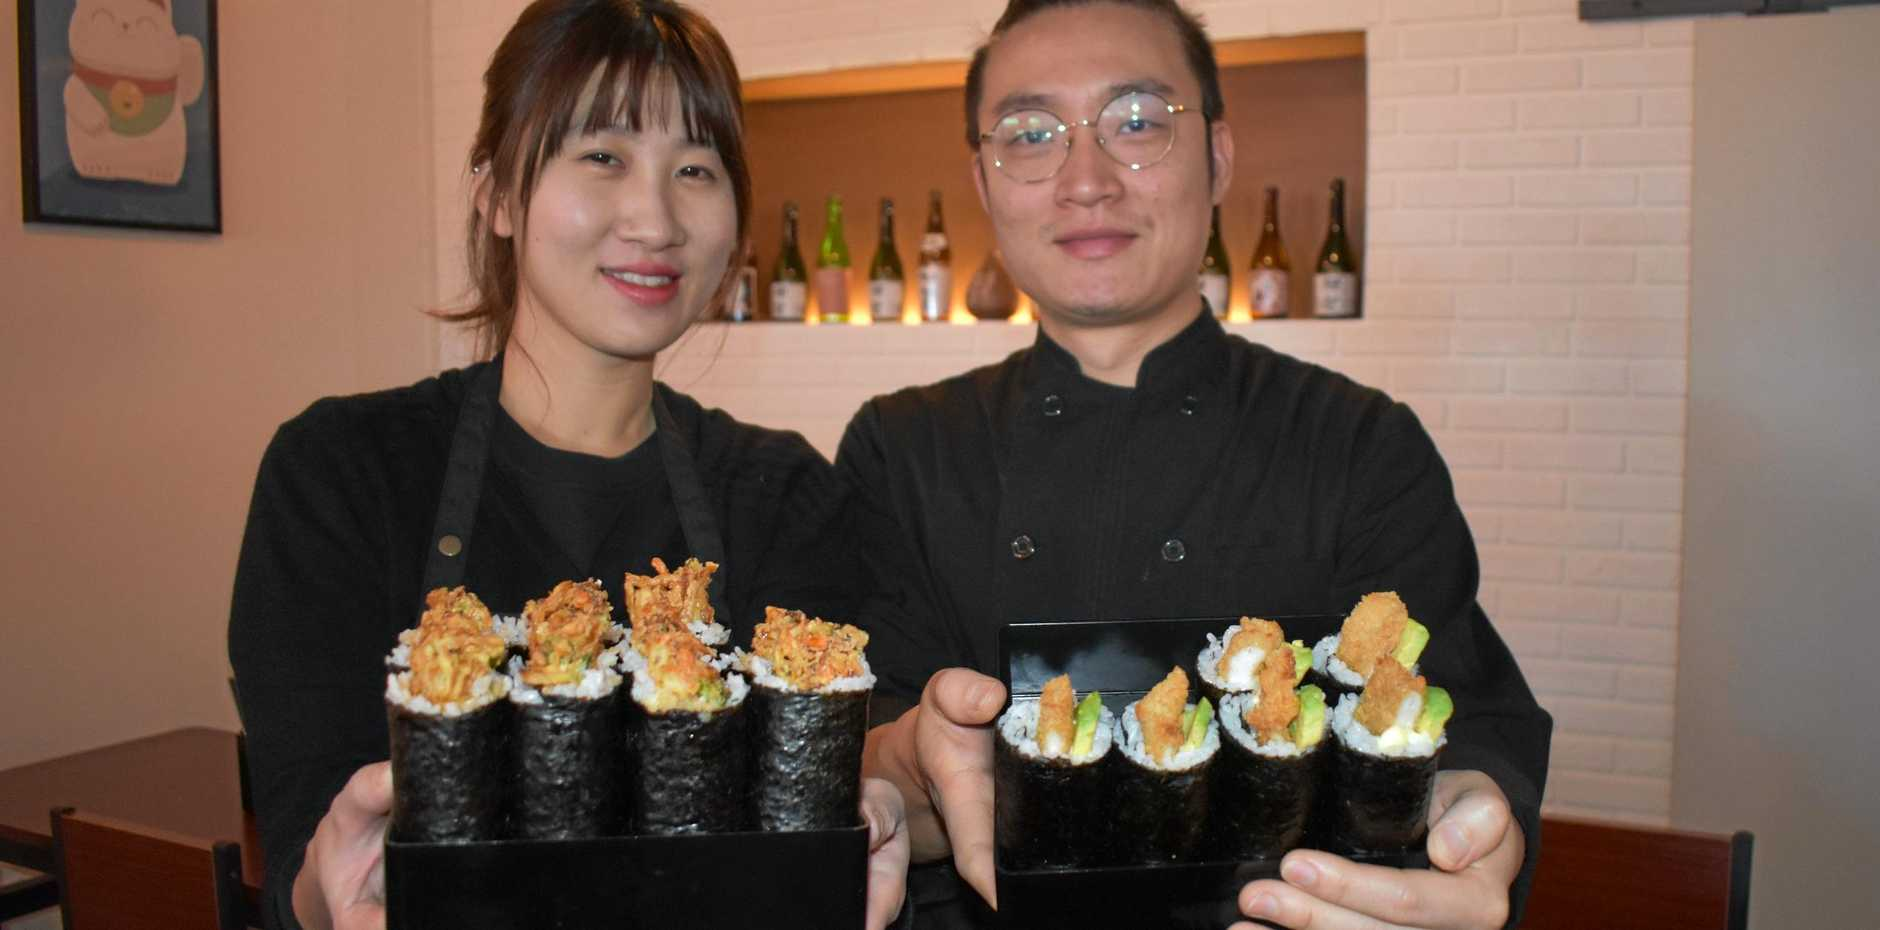 ON A ROLL: Jin Young Choi and Sung Ho Kim show off their favourite sushi.